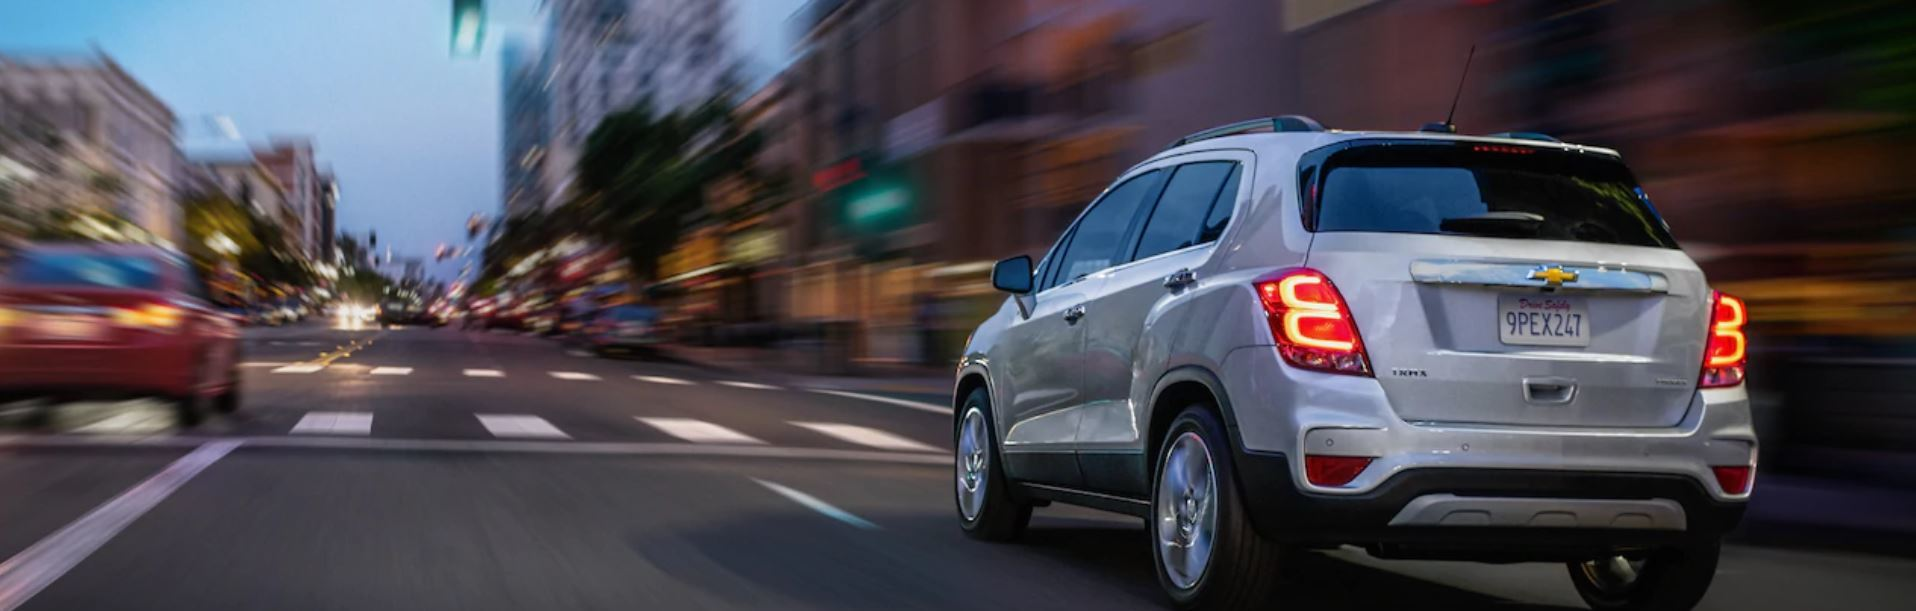 2020 Chevrolet Trax Financing near Portage, IN